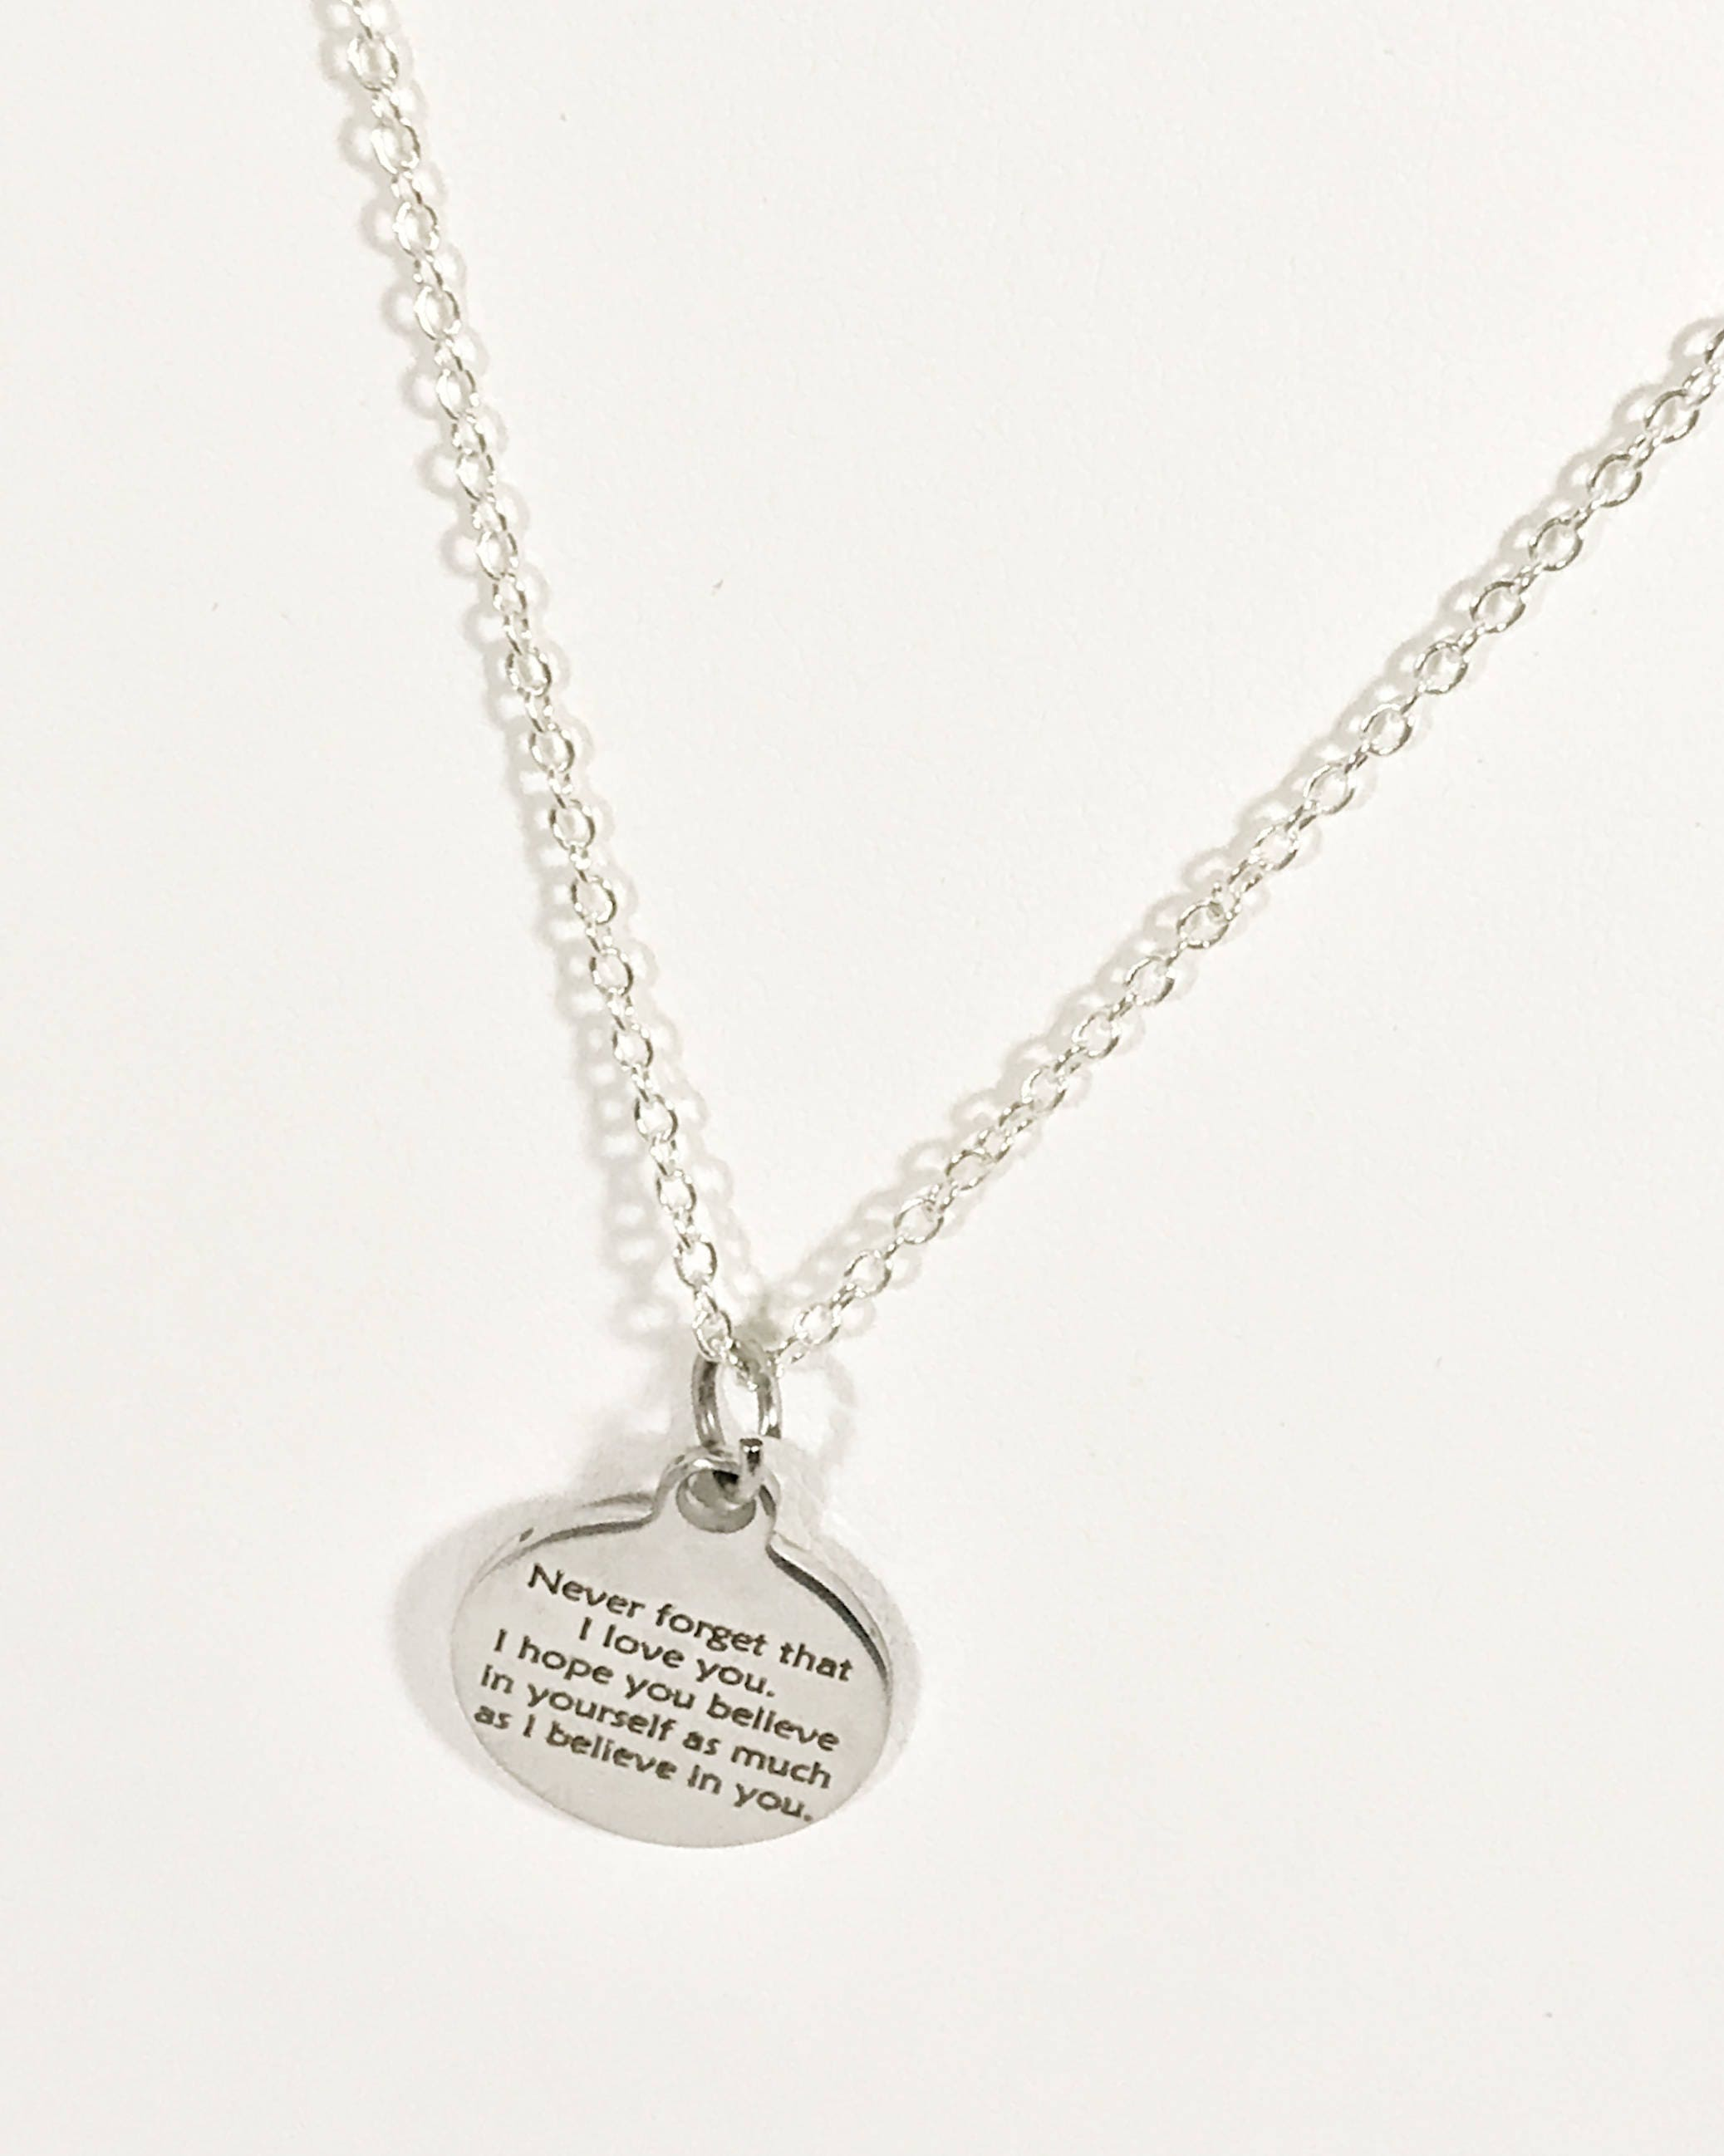 Believe in yourself necklace never forget that i love you necklace jkce designs solutioingenieria Image collections